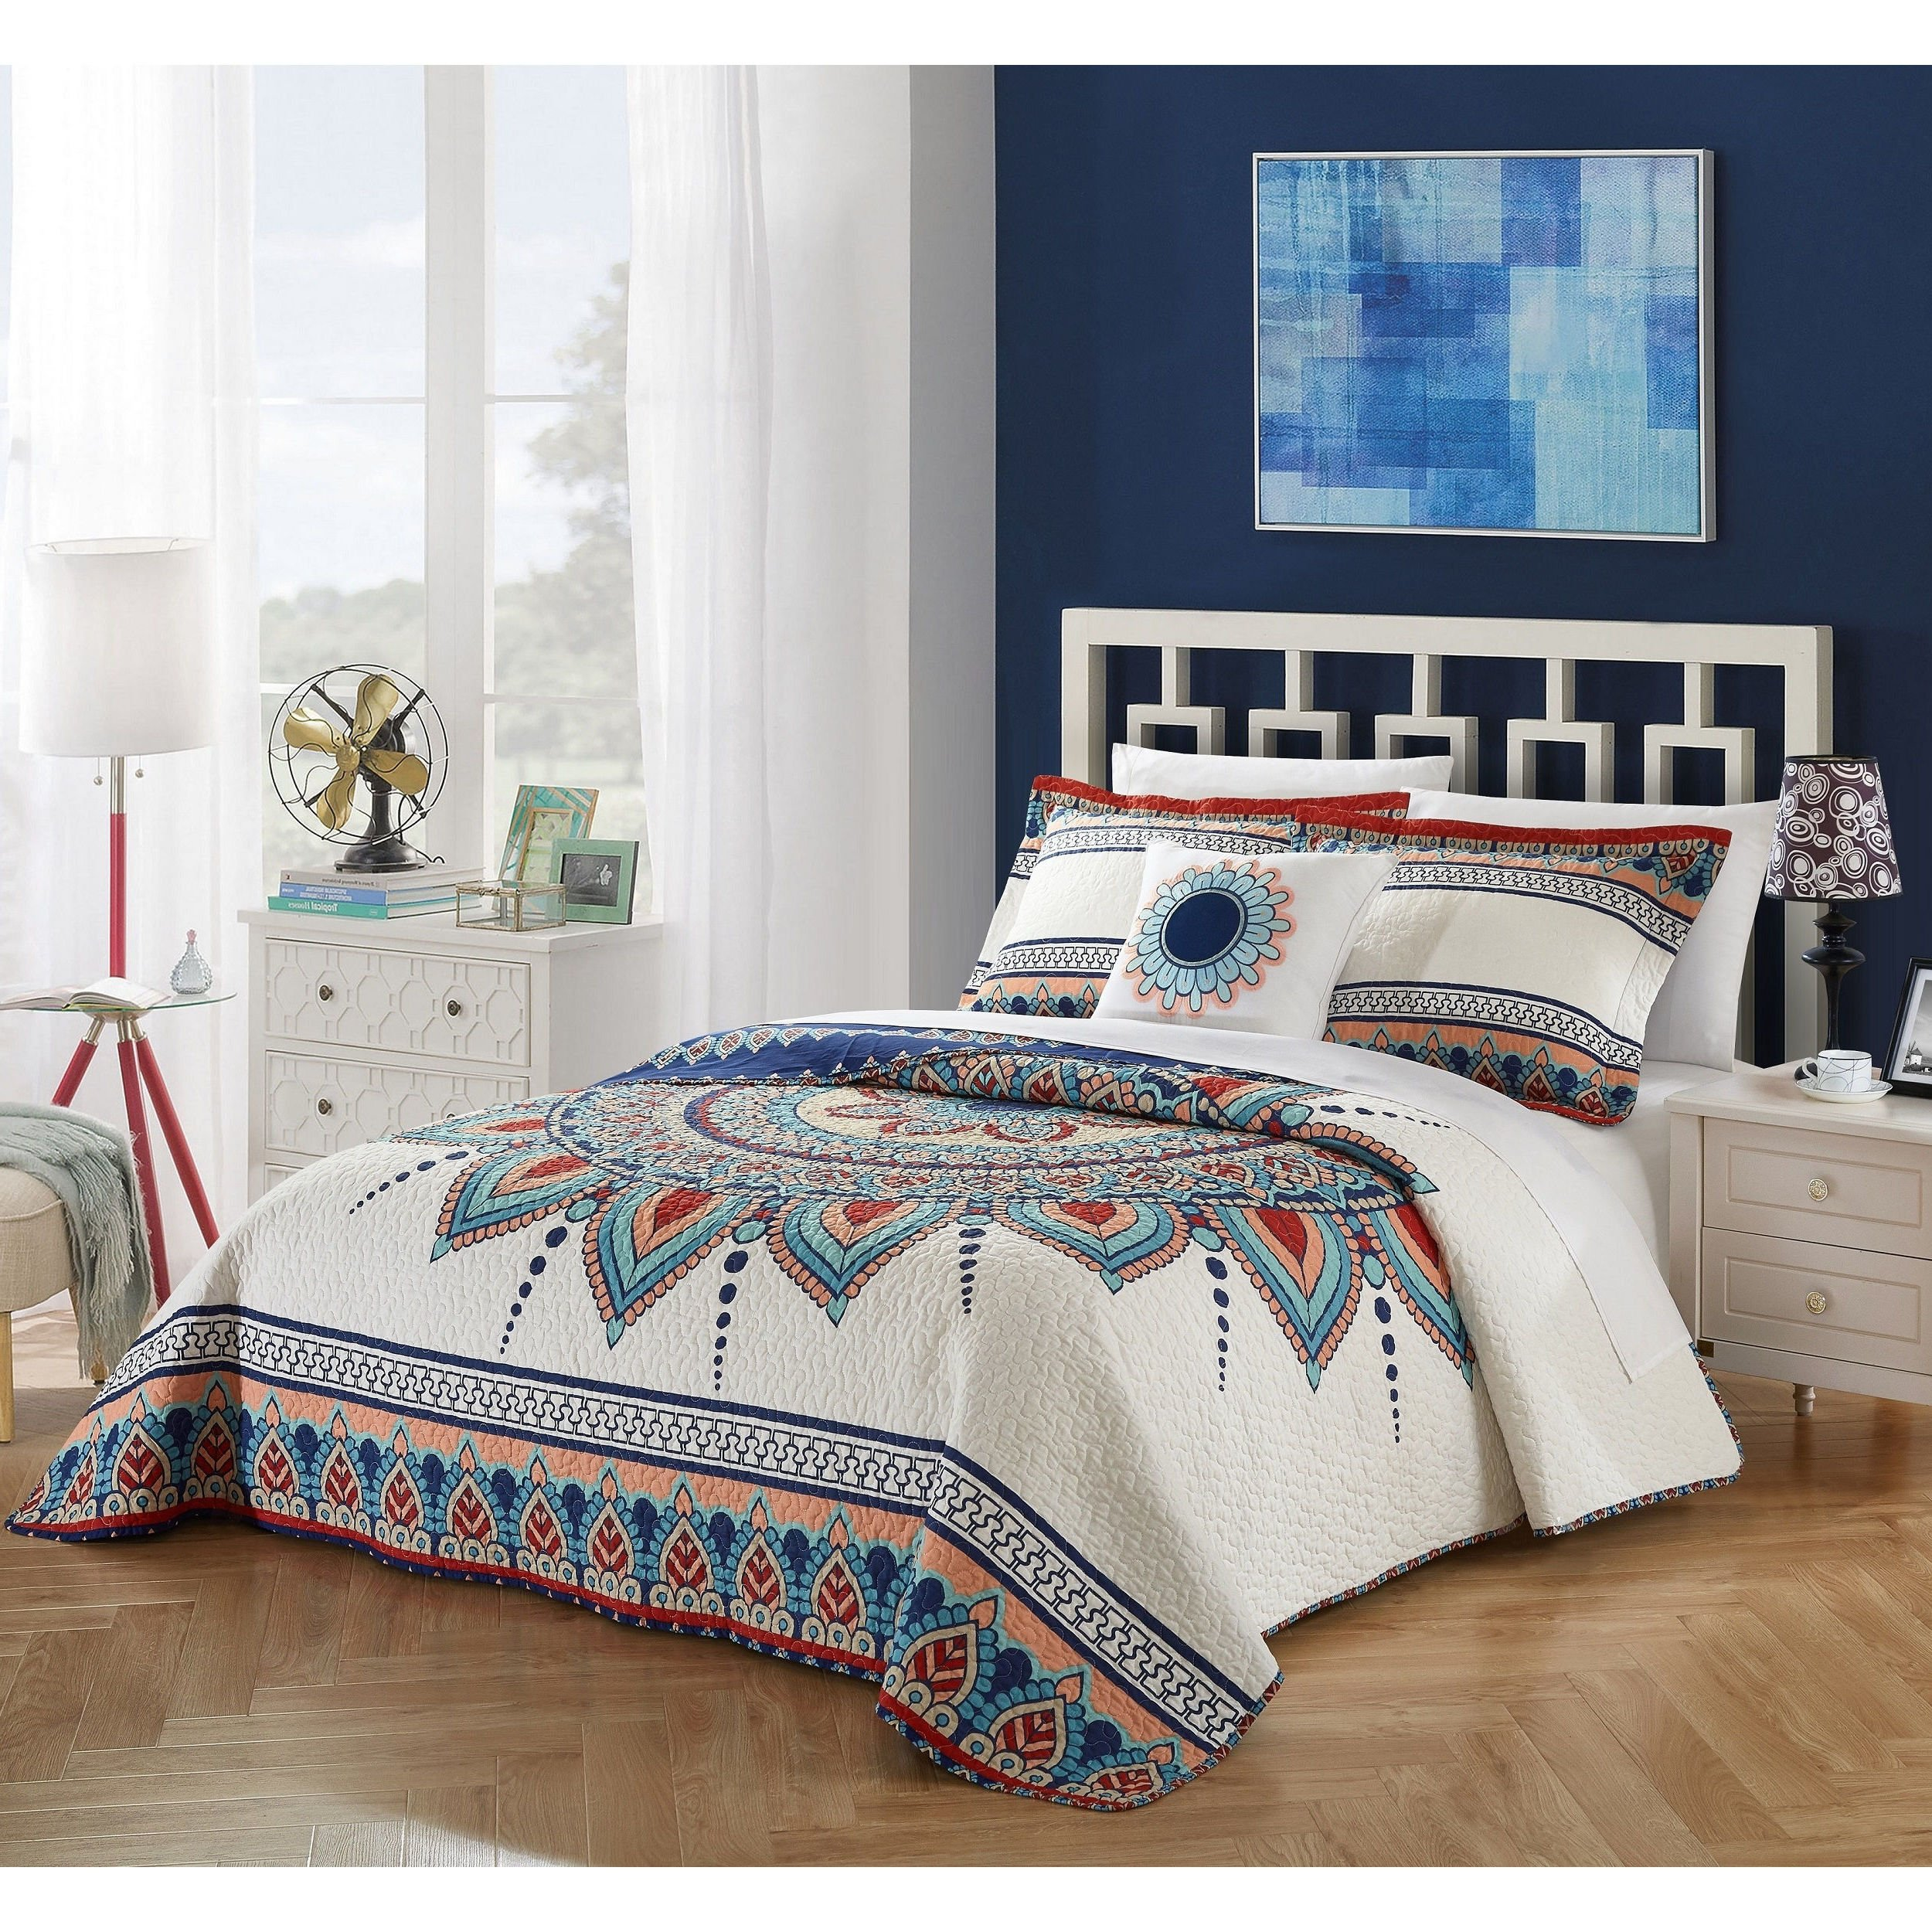 4 Piece Stunning White Navy Blue Red Orange Queen Quilt Set, Aztec Mandala Themed Reversible Bedding Vibrant Artistic Aqua Bright Hippie Bohemian Boho Pretty Contemporary Psychedelic Abstract, Cotton